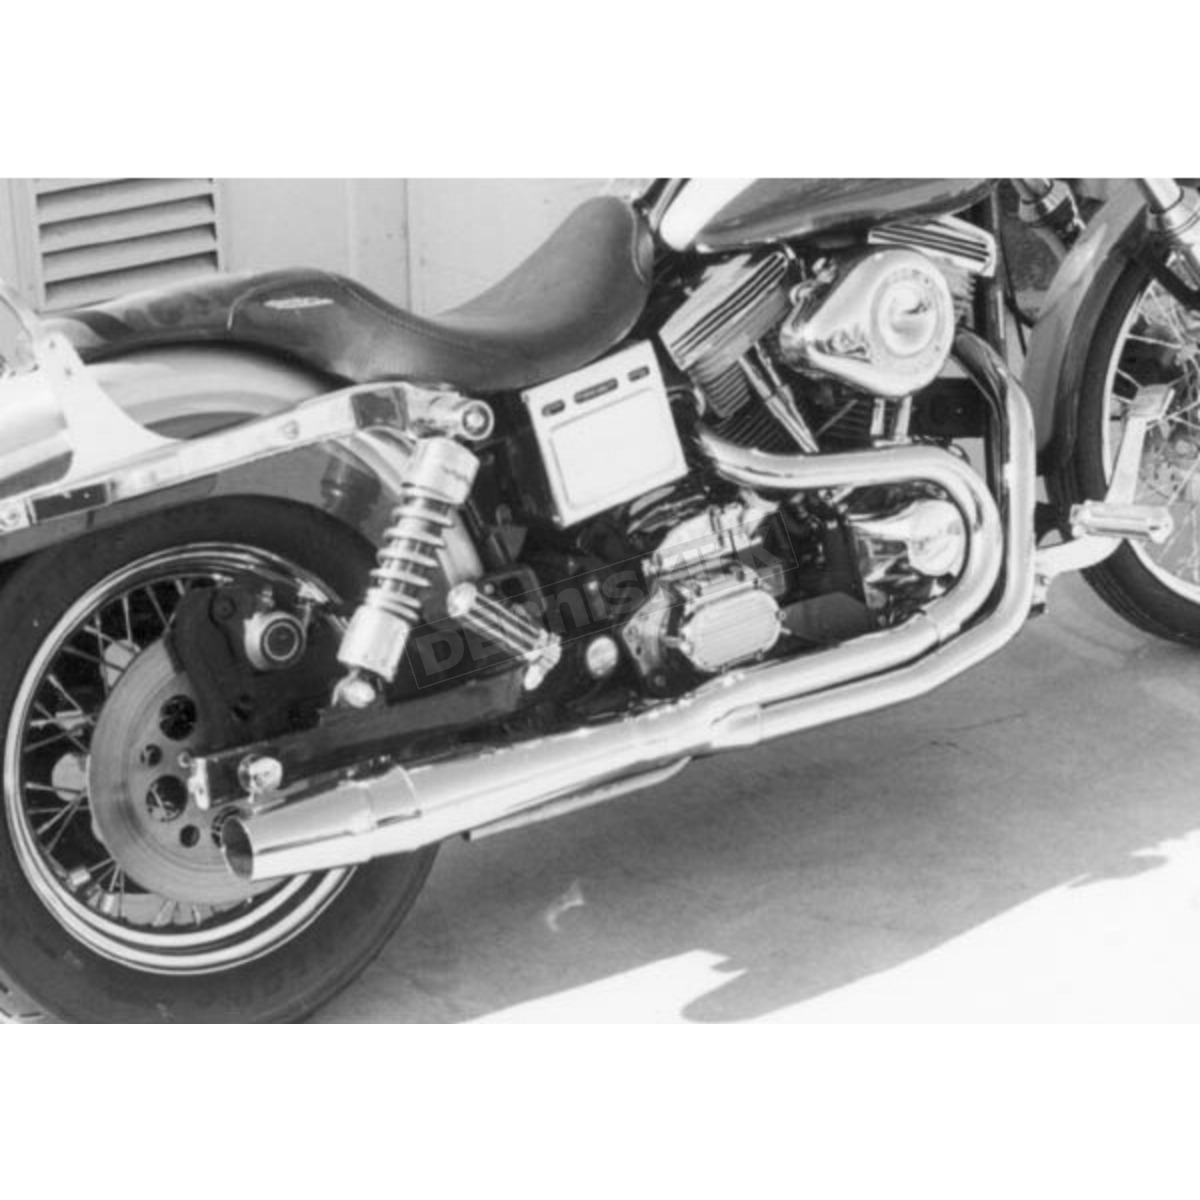 2 into 1 high performance exhaust system 1022